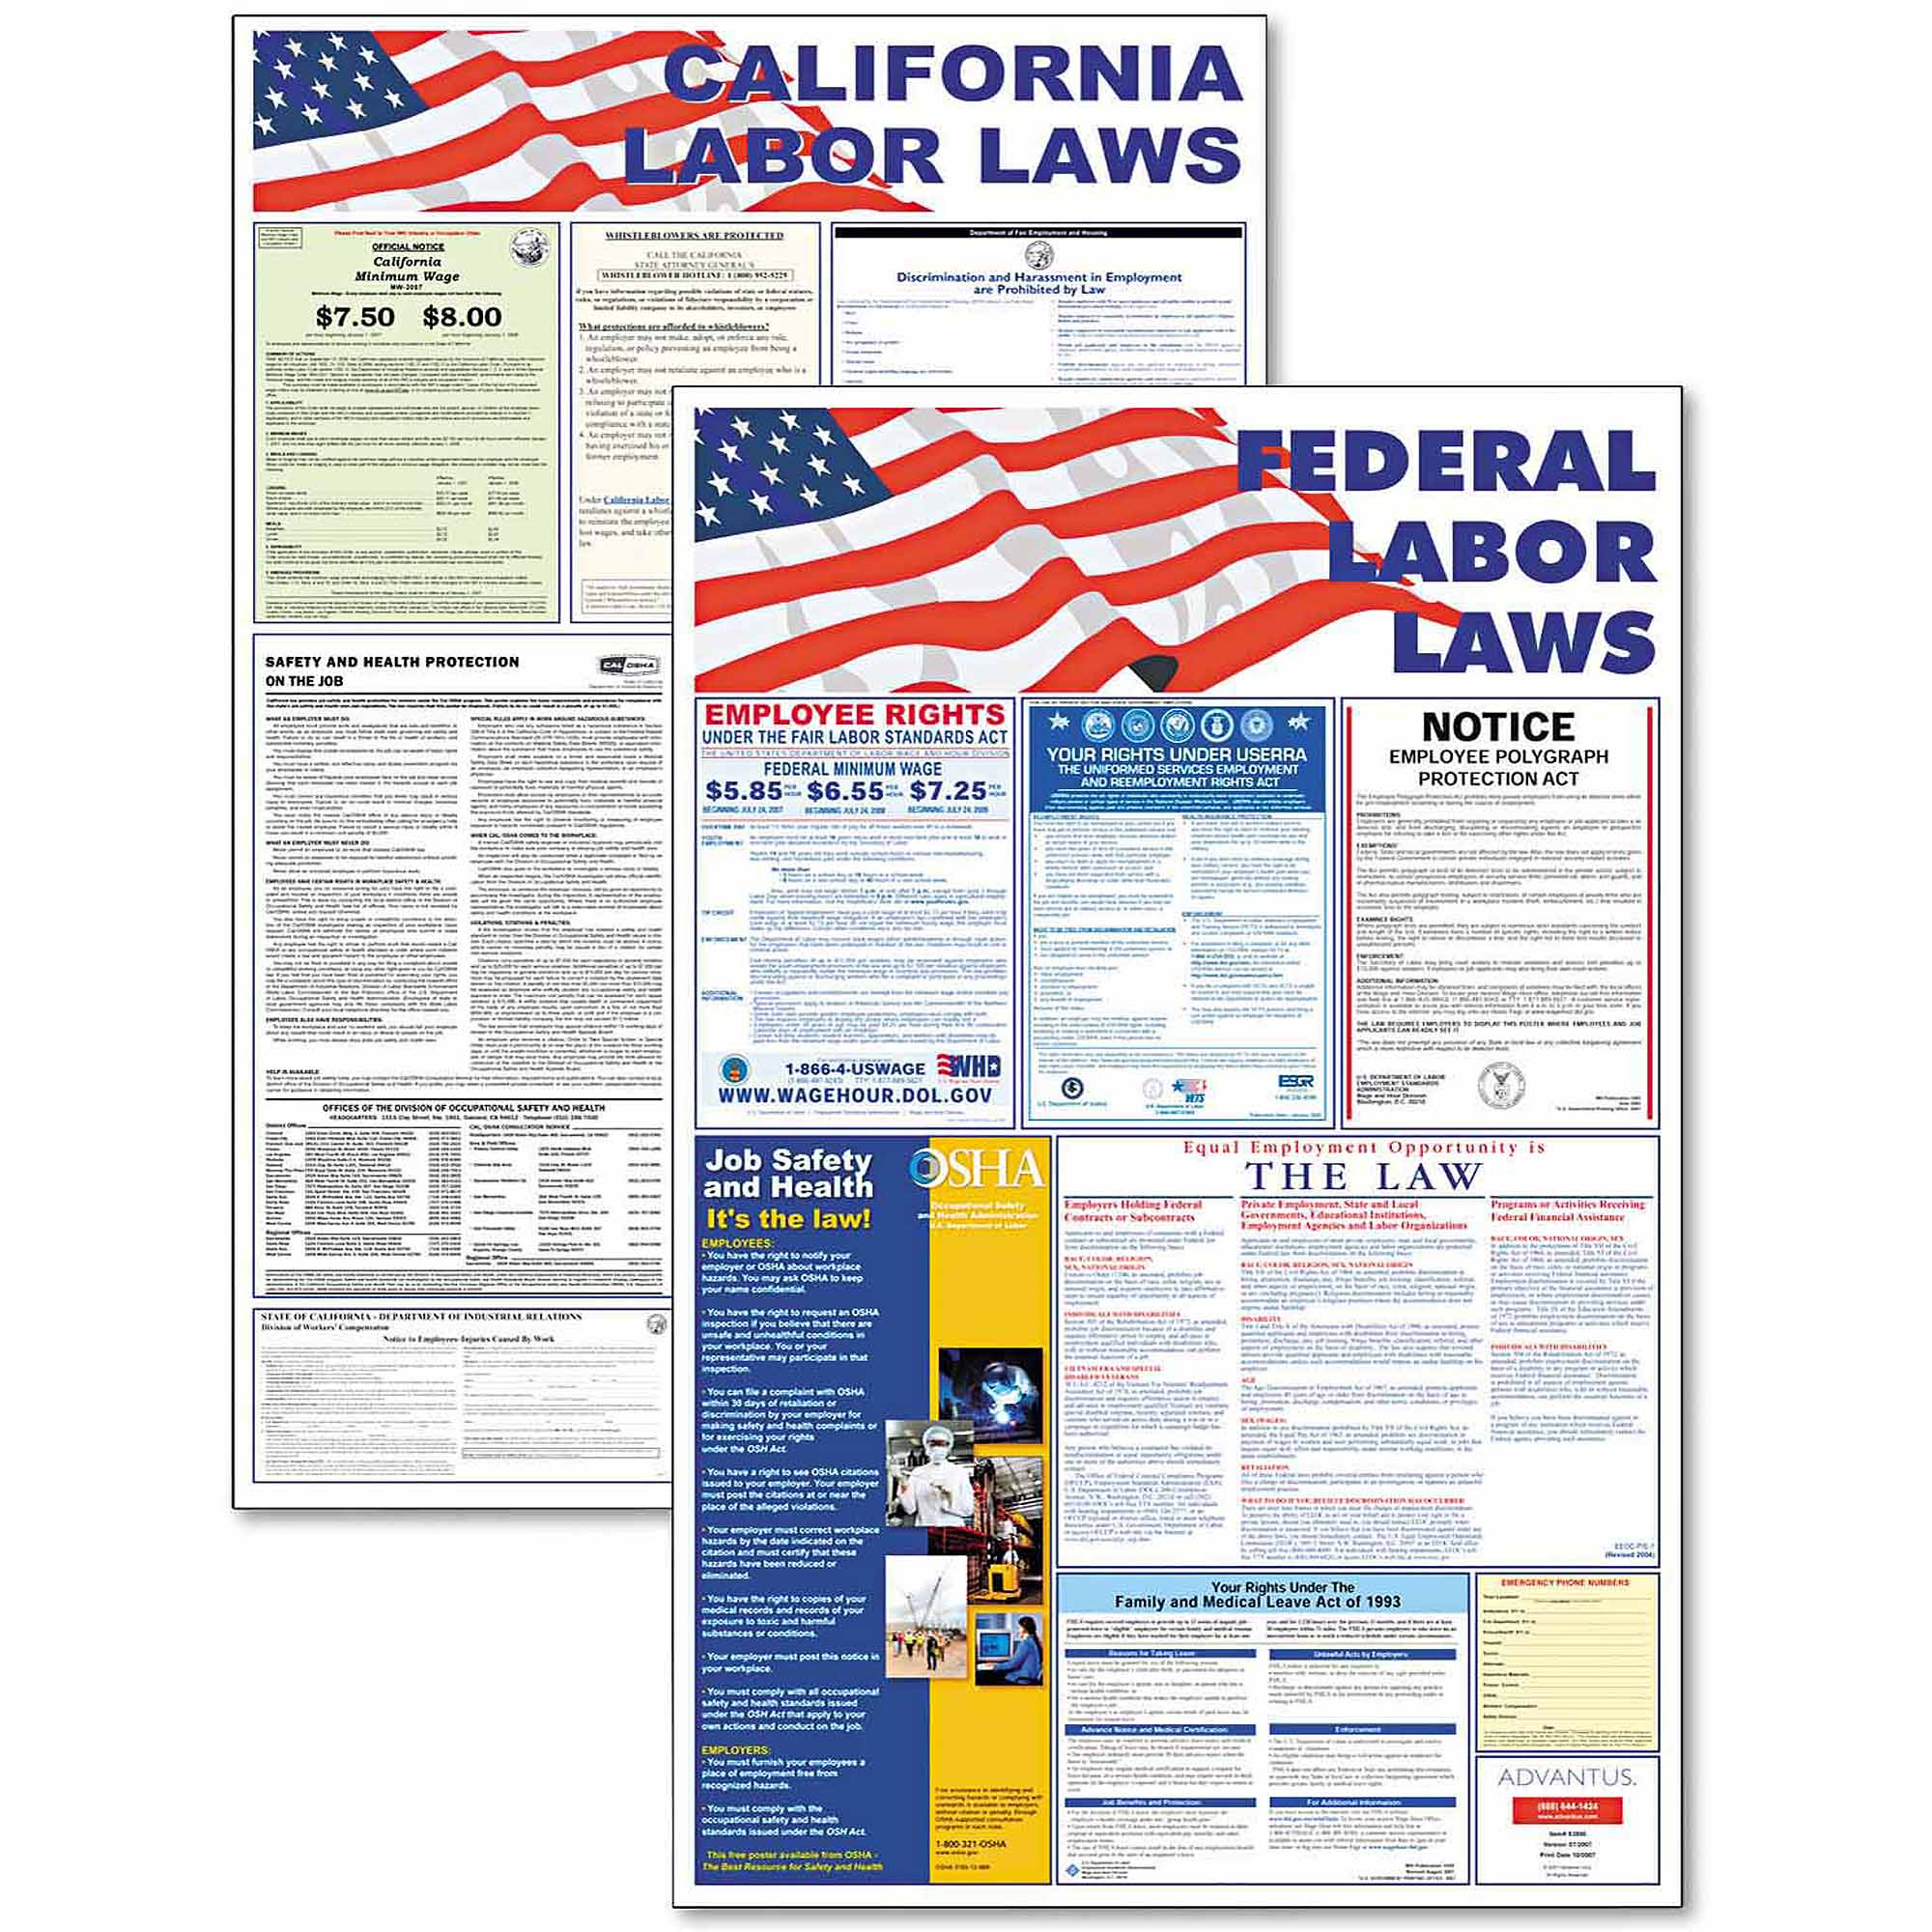 Advantus State/Federal Labor Law Legally Required Multi-Colored Poster